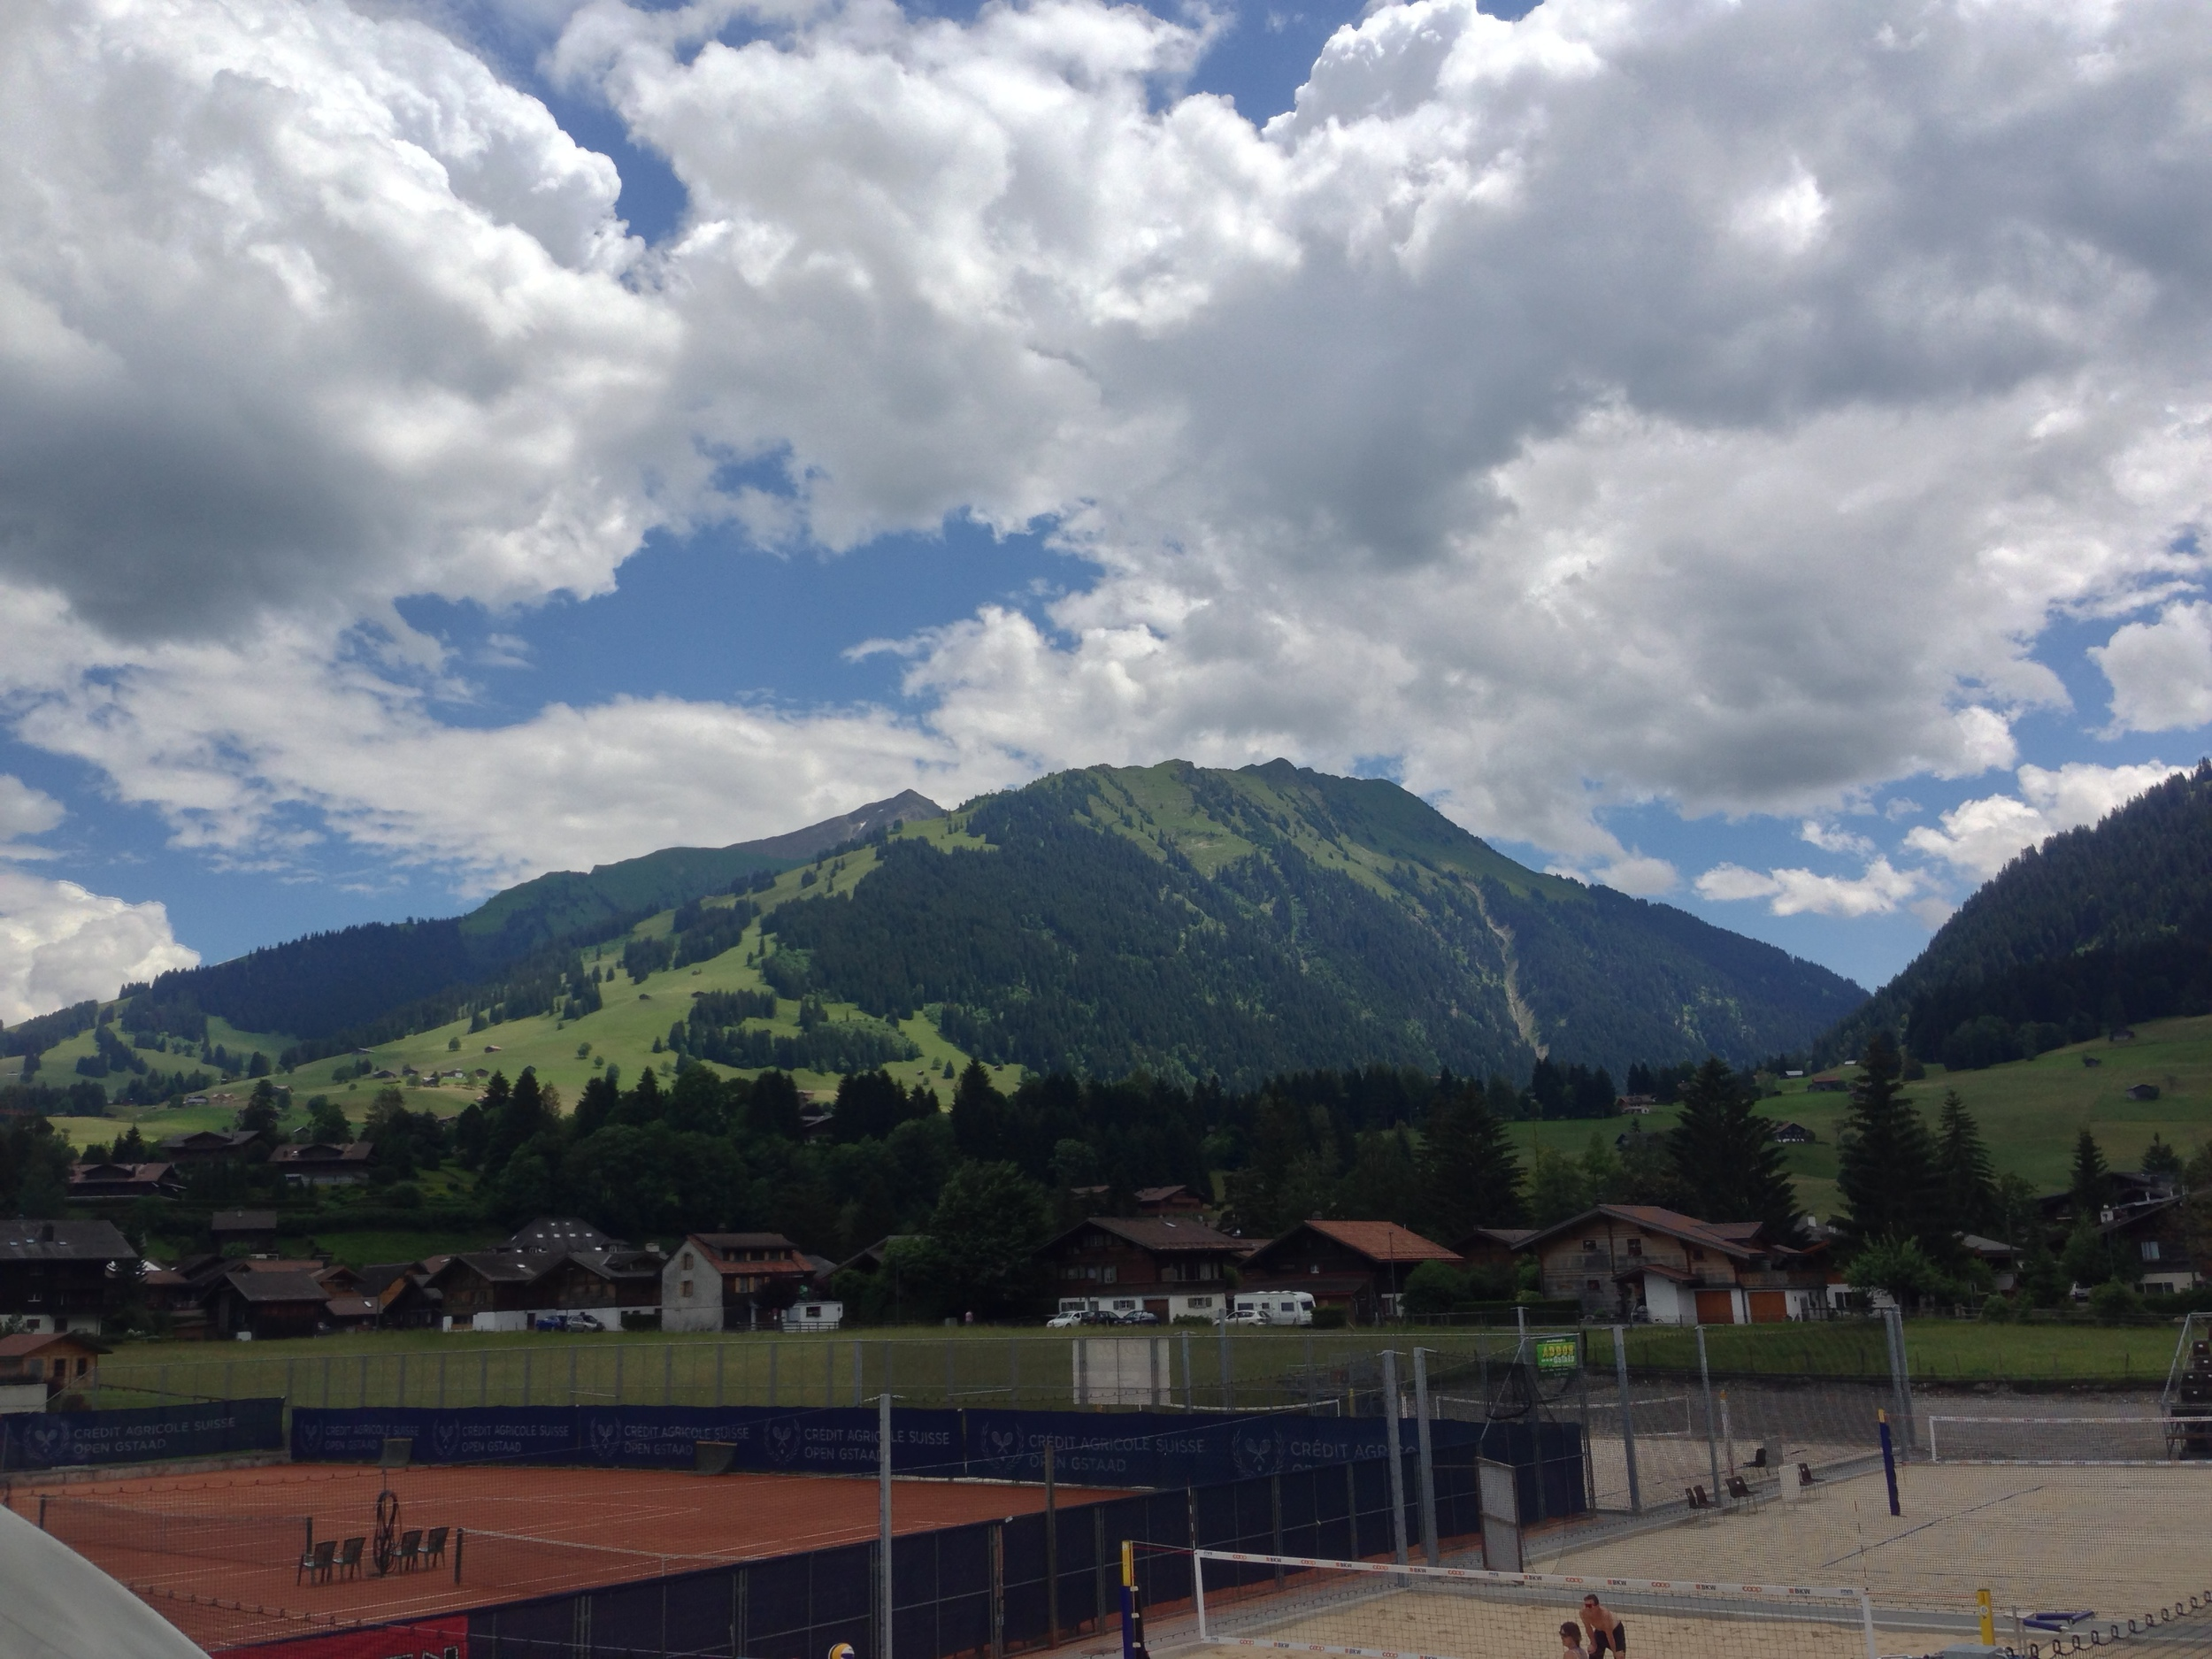 The beautiful mountains form the tournament backdrop here in Gstaad.